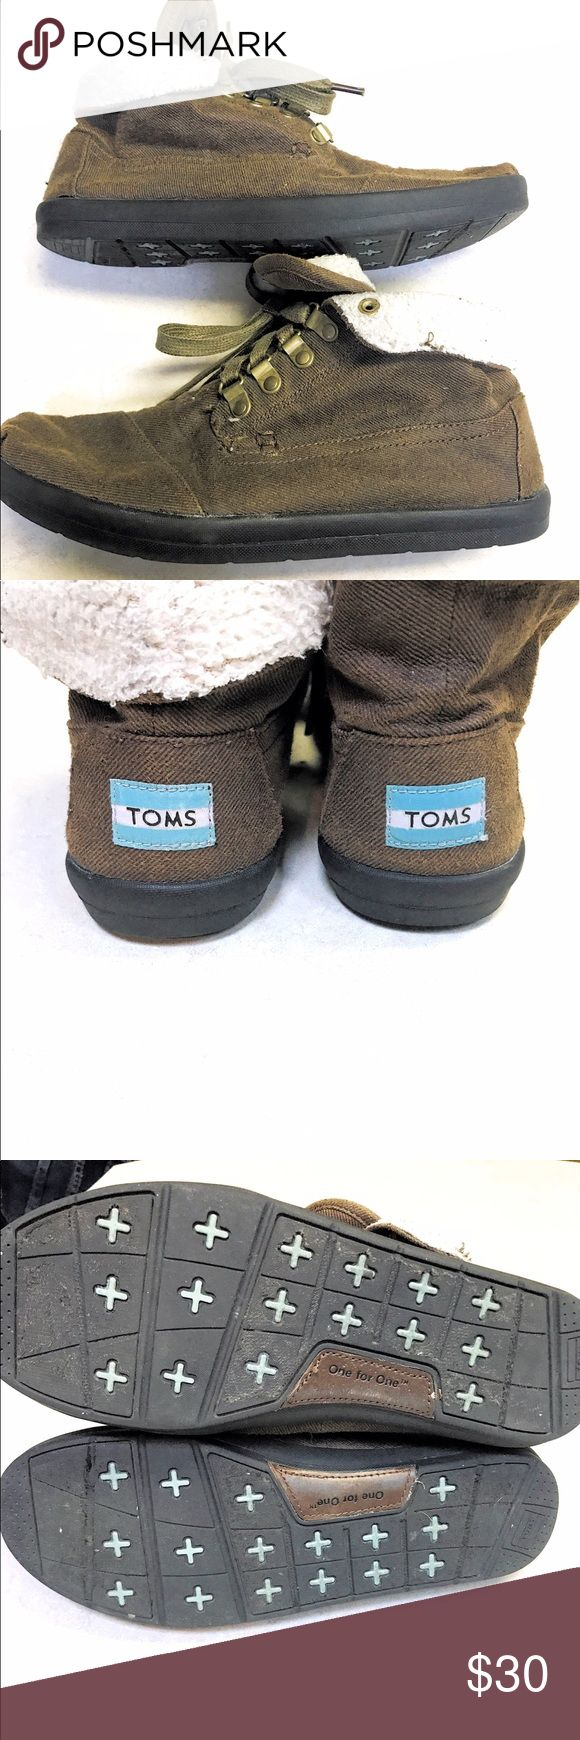 TOMS Botas  size 9 an brown canvas ankle boots. TOMS Botas size 9. Lightweight chambray ankle boots, fully lined. Where them up, or folded down and show off the brand! TOMS Shoes